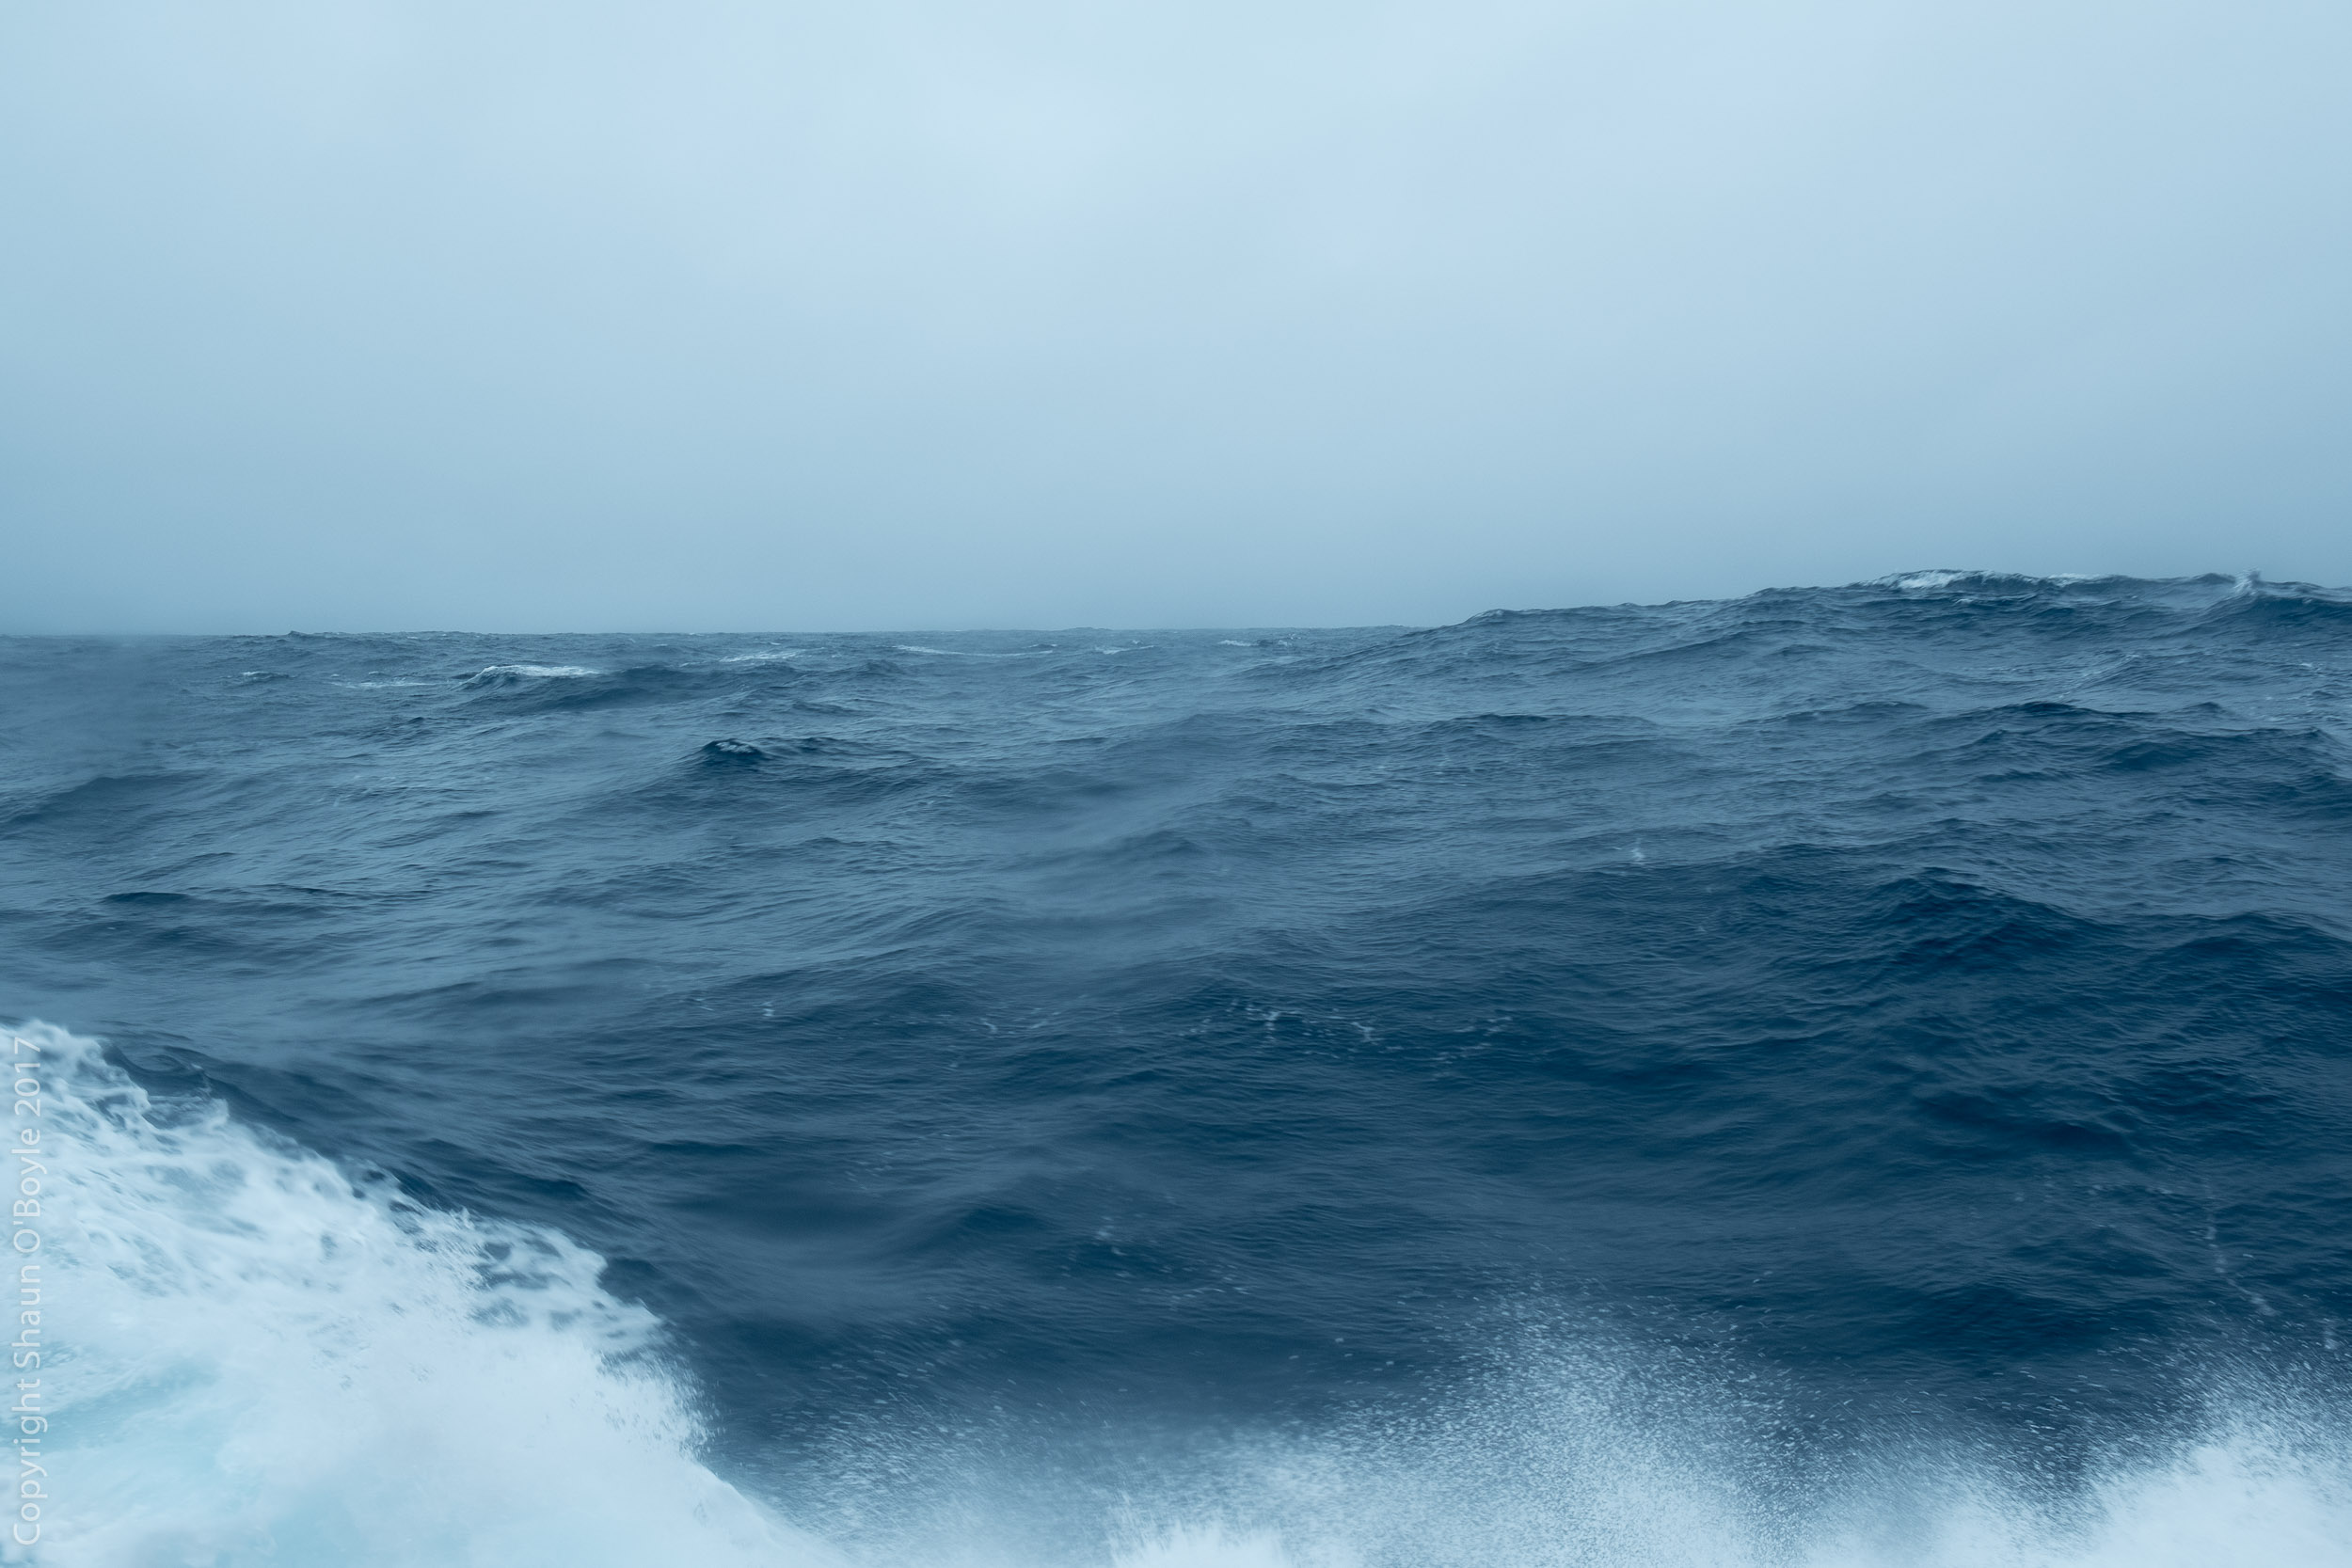 Drake Passage in a less welcoming mood. The ship was rocking 15 degrees side to side and plunging vertically 15-20 feet. A never ending roller coaster ride. Did I mention that I was sea sick?Barfalunga for 2 days.